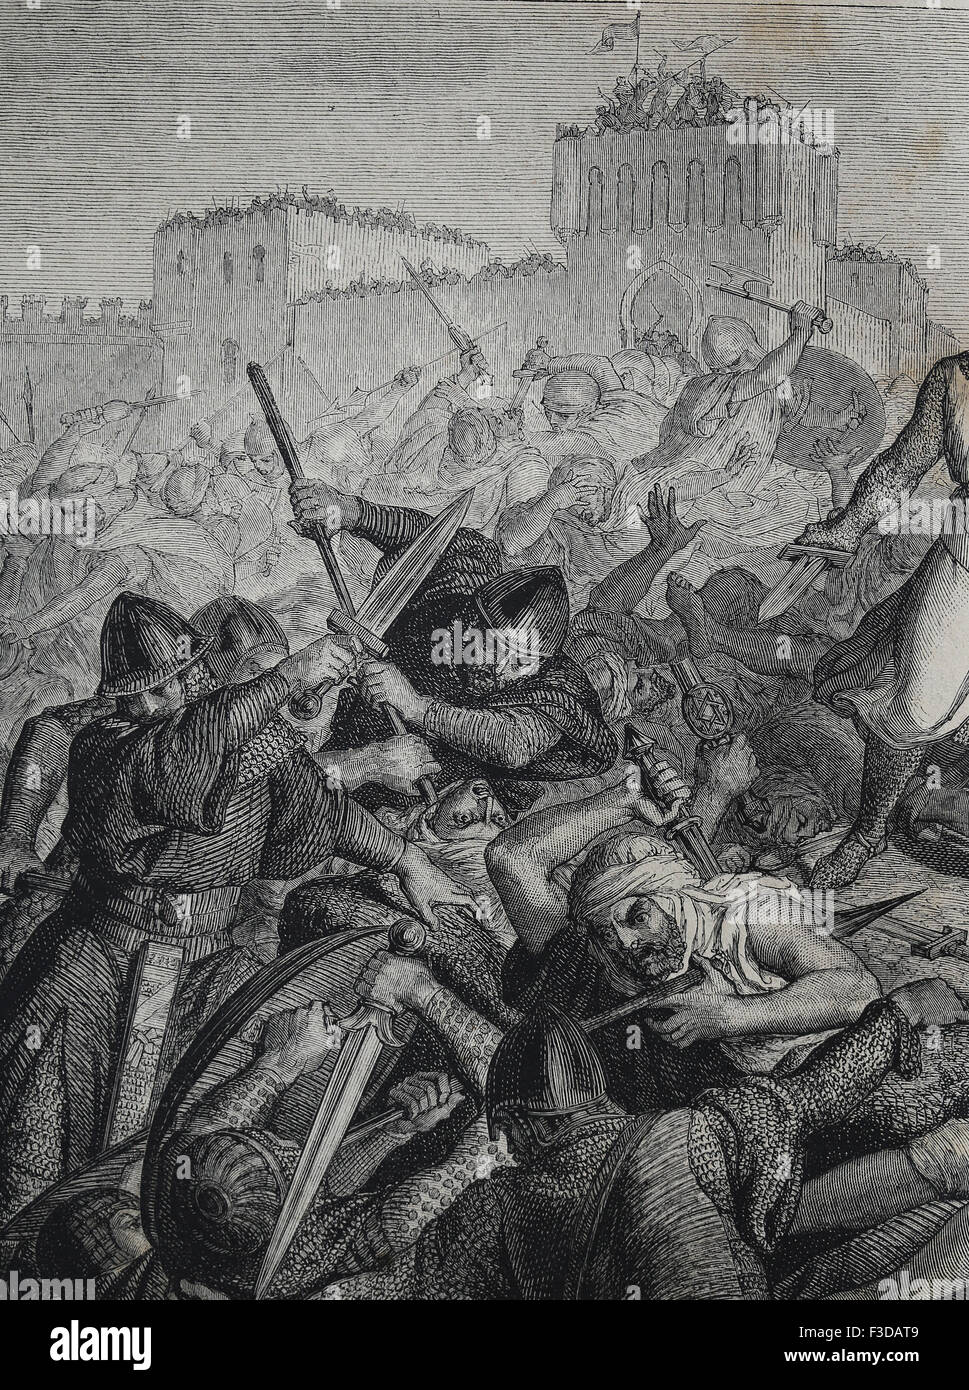 Spain. Conquest of Valencia. El Cid (1043-1099). Battle of Cuarte, 1094. Christians and Moorish army. Engraving. - Stock Image